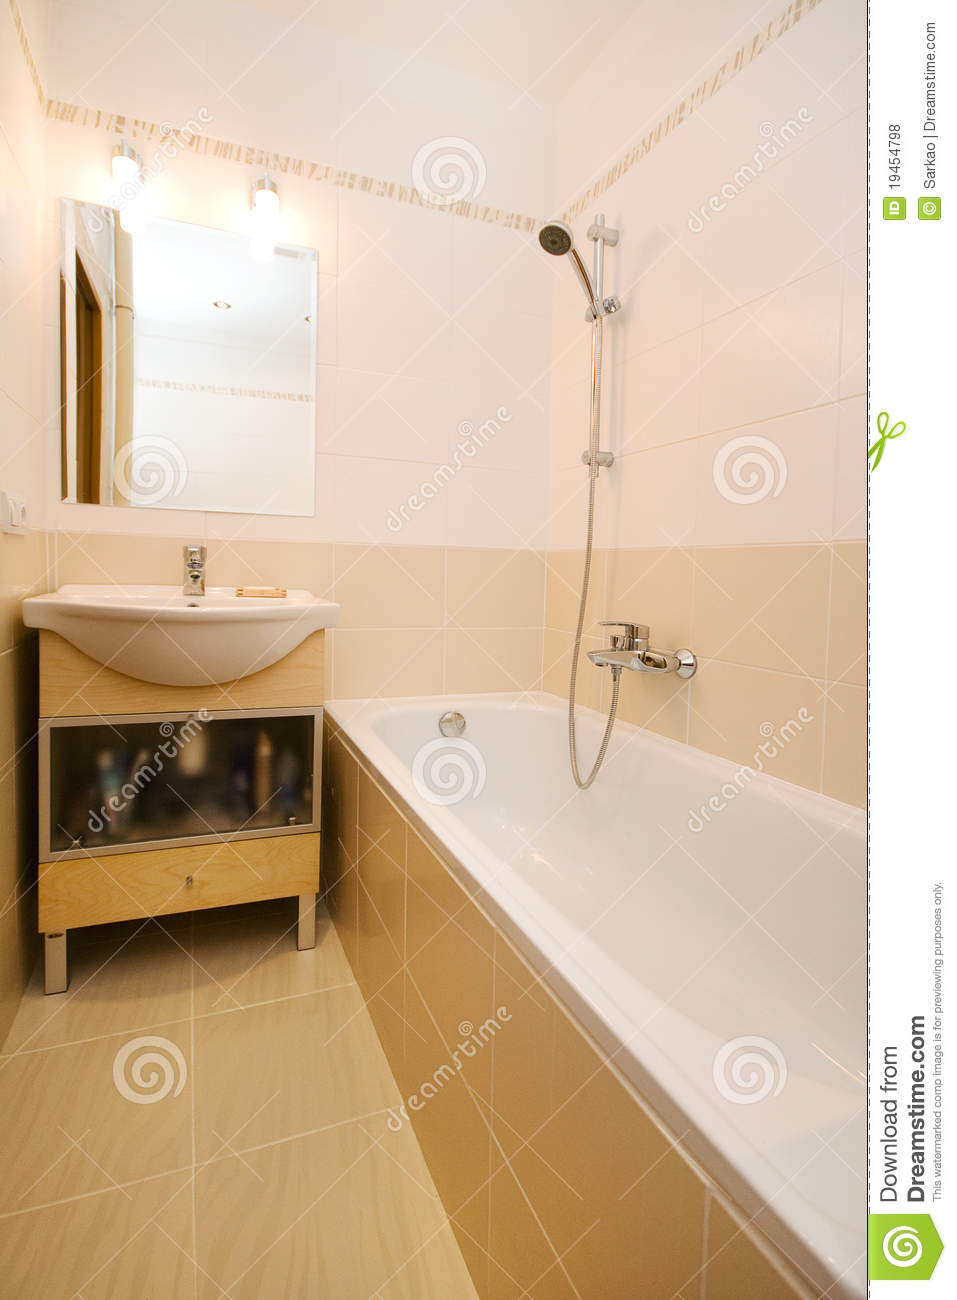 Empty Modern Bathroom Royalty Free Stock Photos Image 19454798